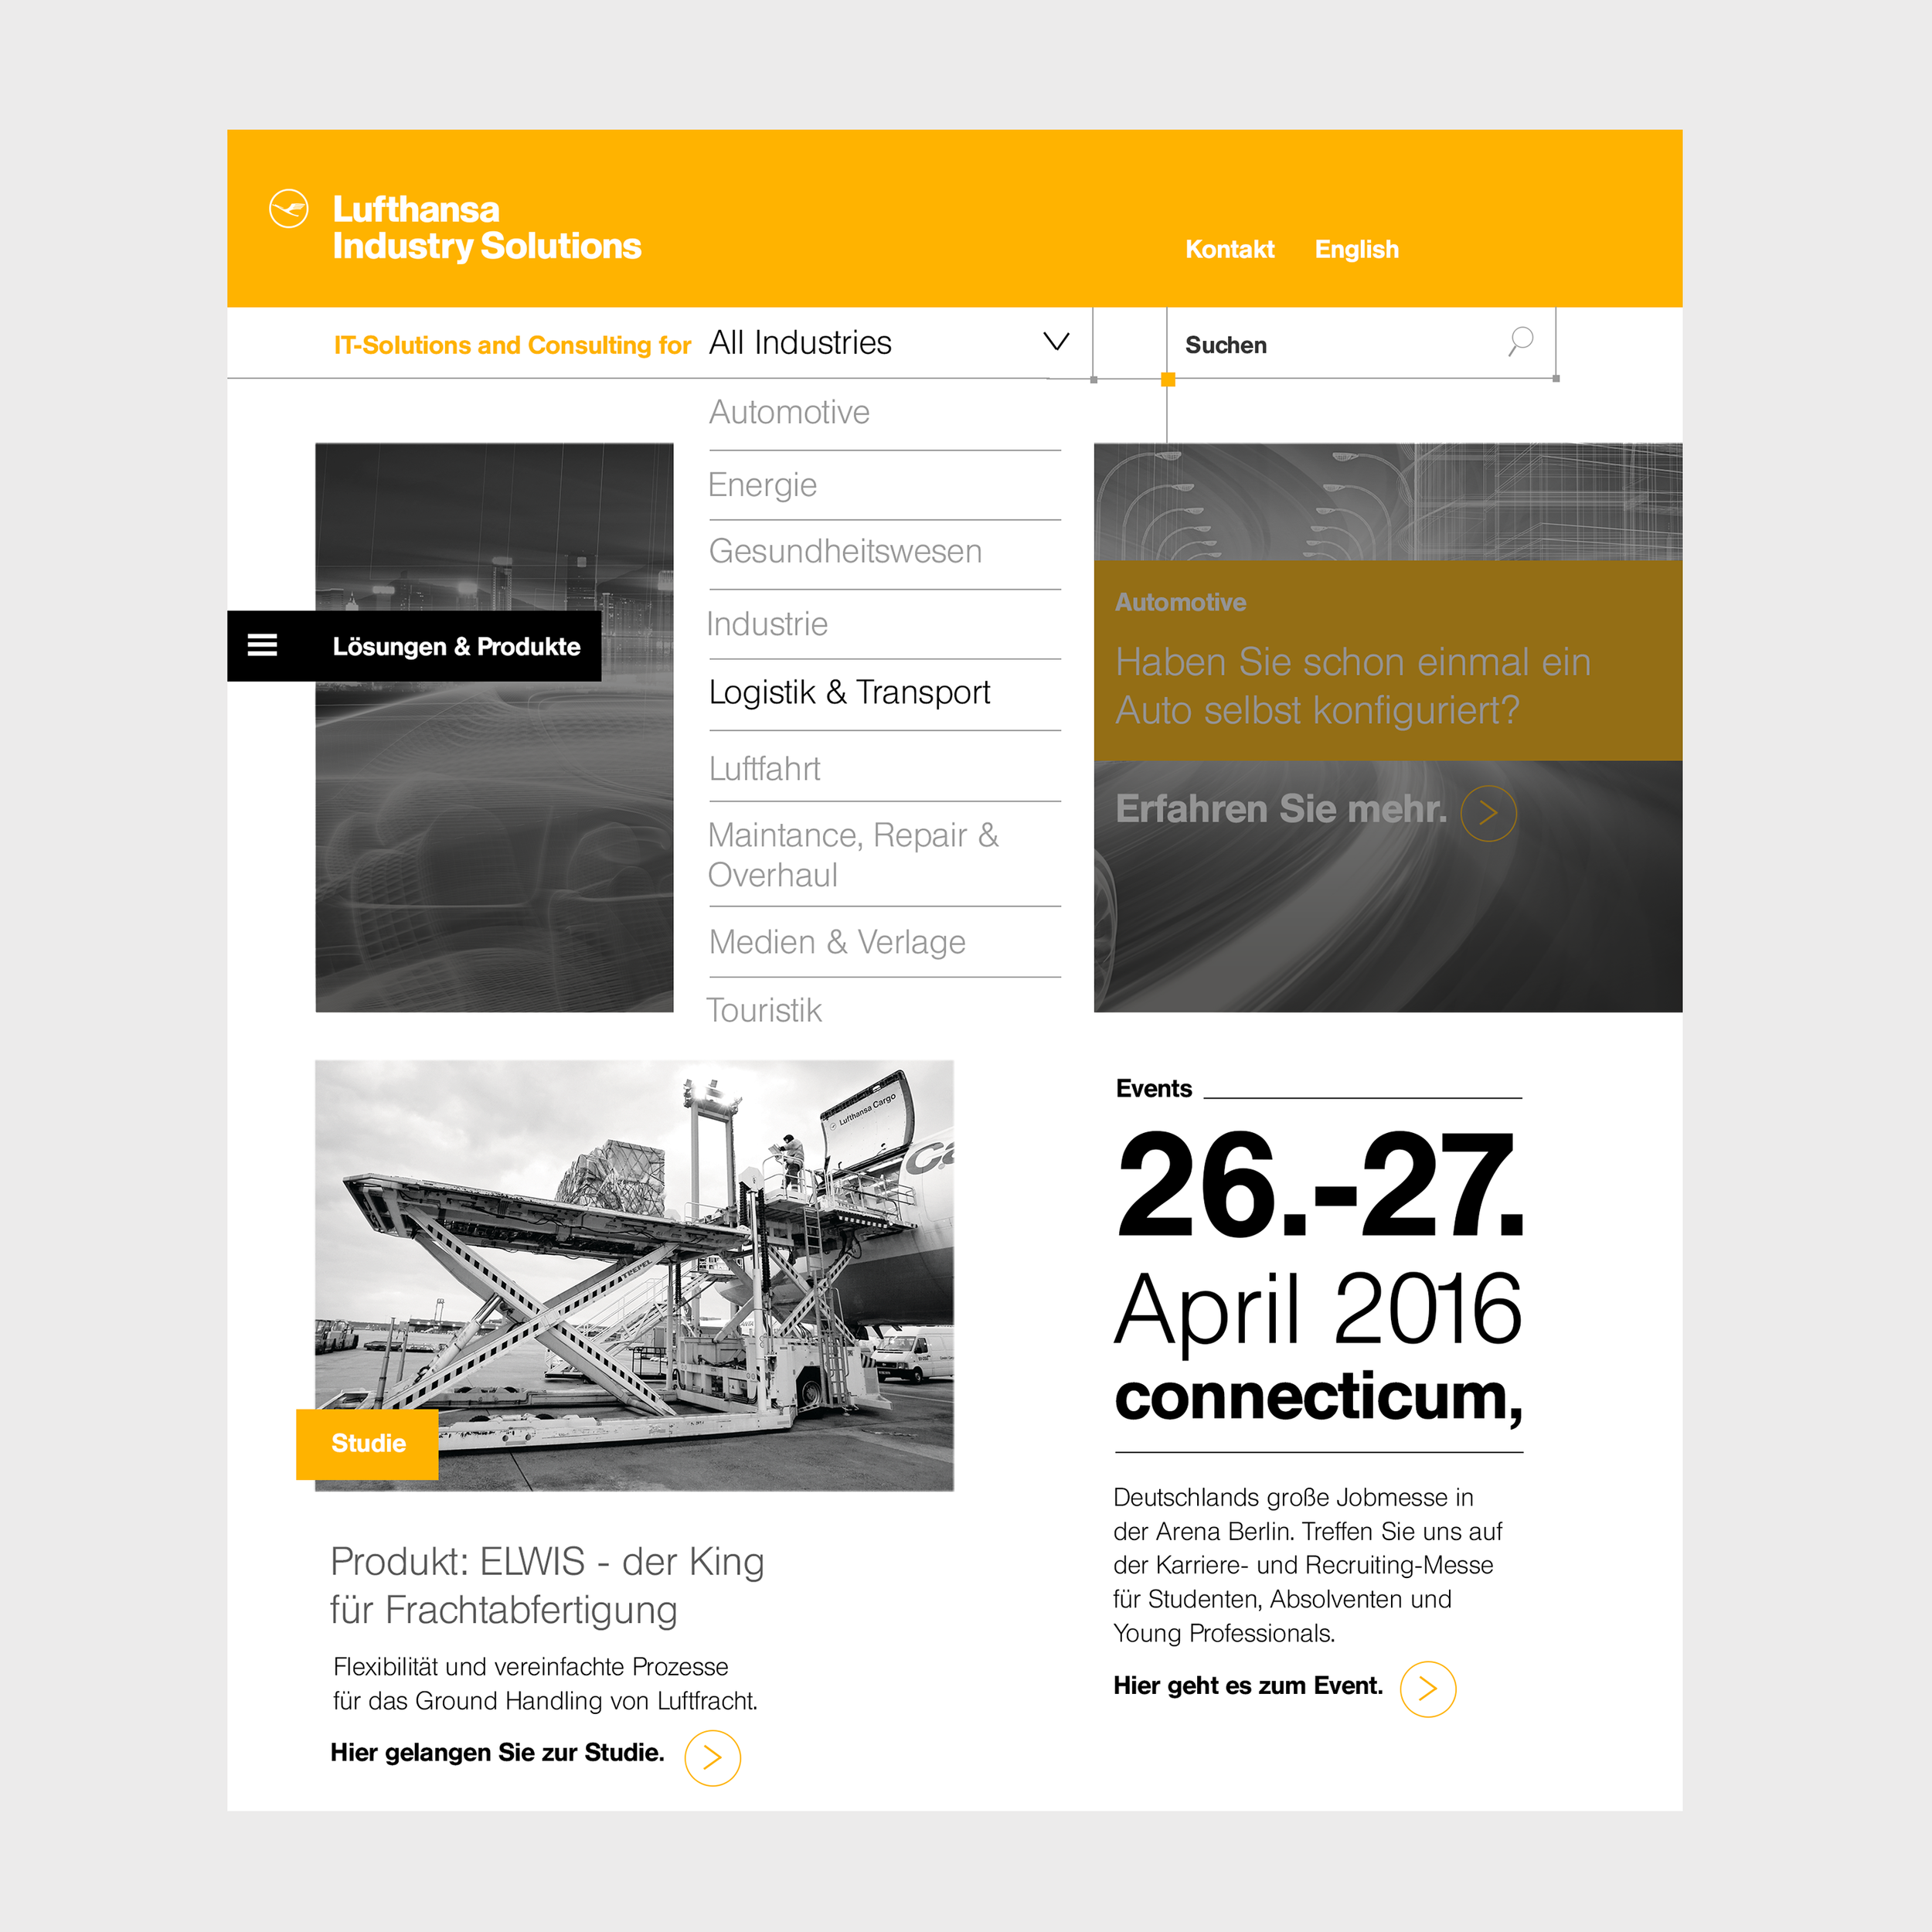 16_05_20_lufthansa_industry_solutions_navi.png